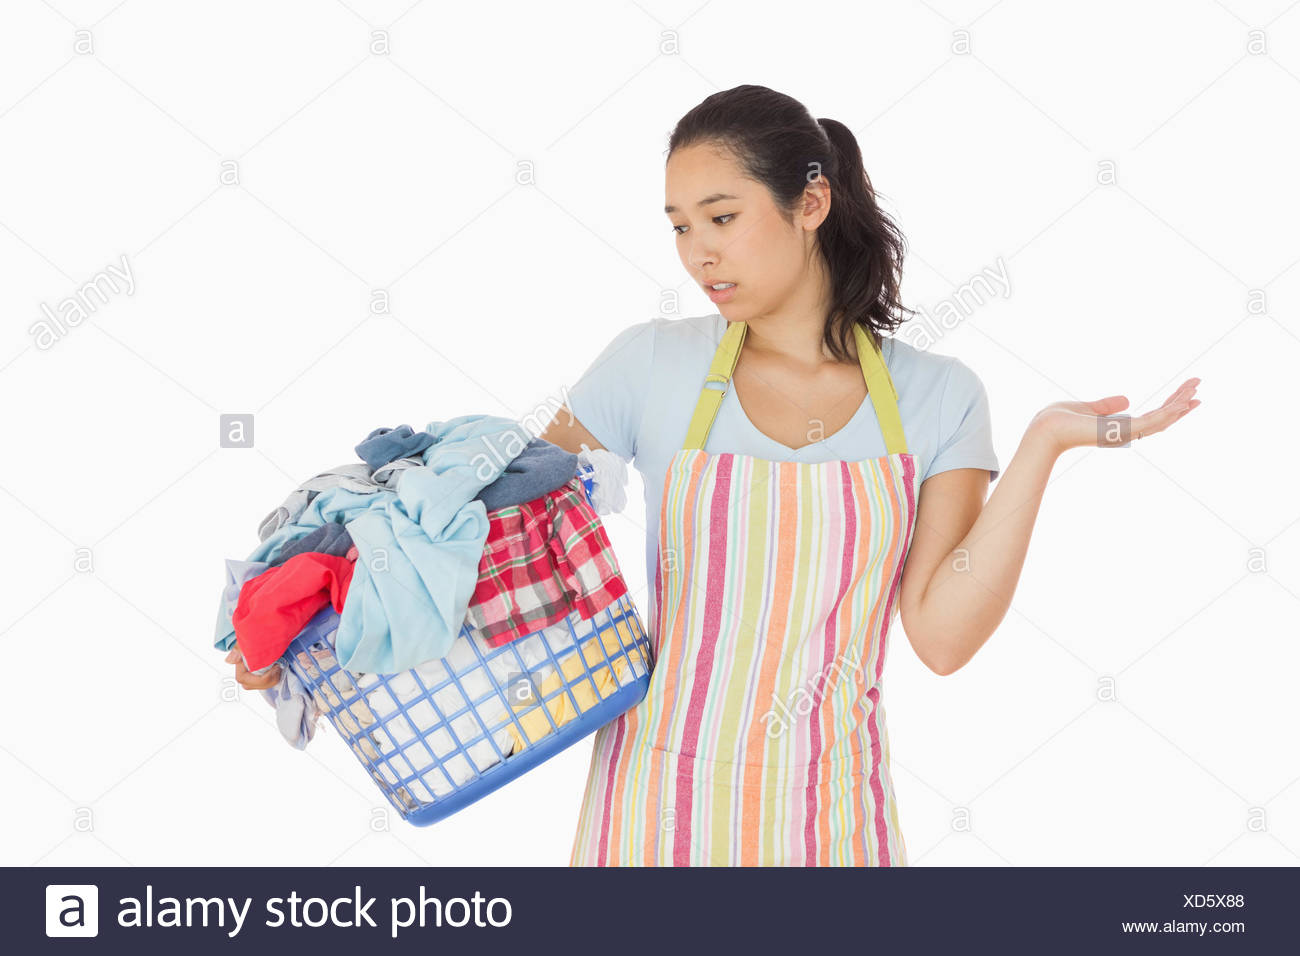 Quizzical looking young woman looking at basket - Stock Image